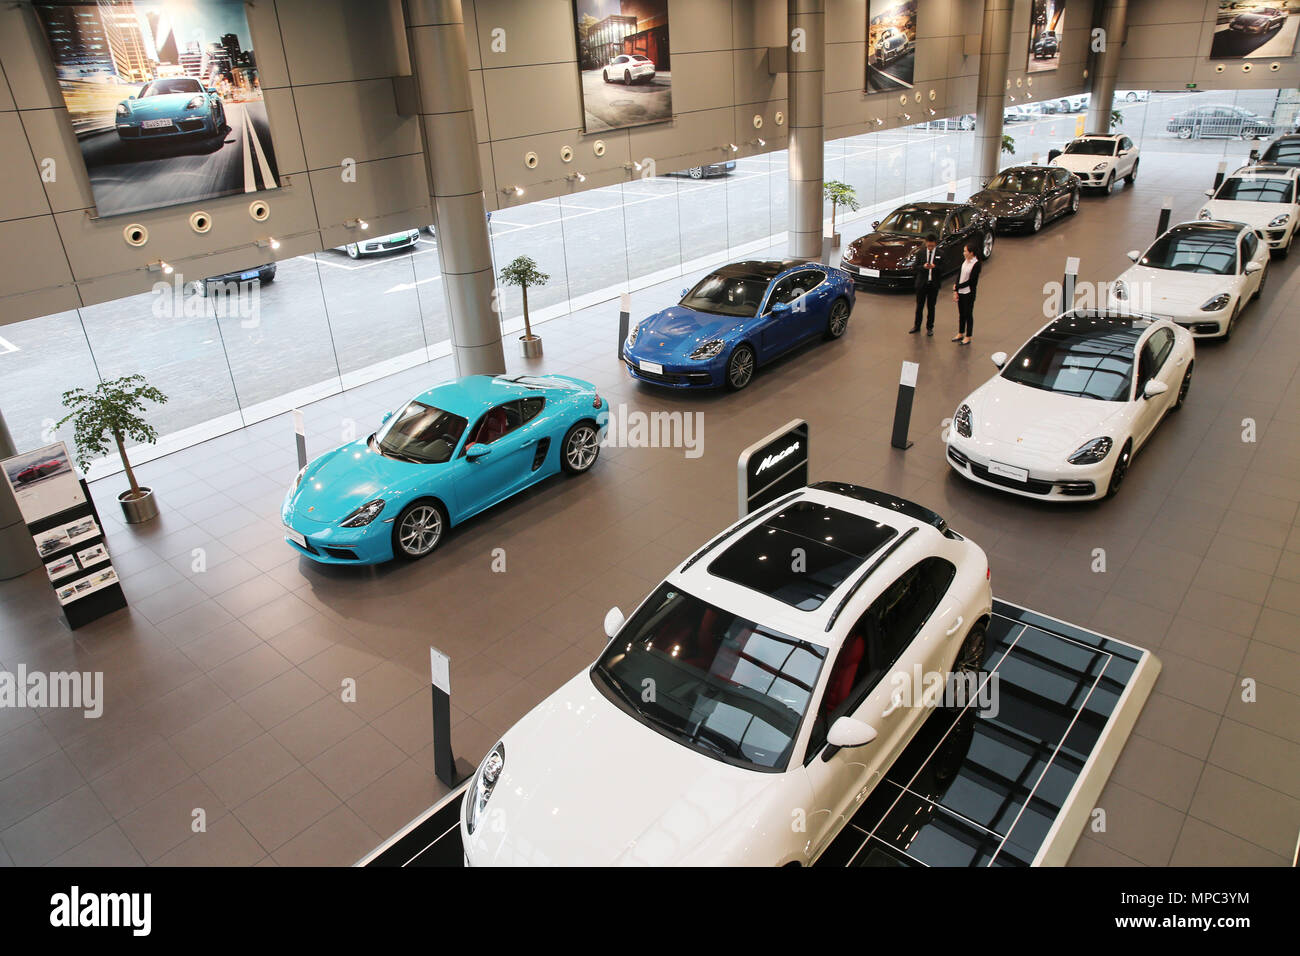 (180522) -- NANTONG, May 22, 2018 (Xinhua) -- Photo taken on May 22, 2018 shows an import vehicle exhibition hall in Nantong, east China's Jiangsu Province. China will cut import tariffs on vehicles and auto parts starting July 1, the Ministry of Finance (MOF) announced Tuesday. For car imports, the 25-percent tariff levied on 135 items and the 20-percent duty on four items will both be slashed to 15 percent, down 40 percent and 25 percent respectively. Import tariffs for 79 items of auto parts will be reduced to 6 percent from the current levels of 8 percent, 10 percent, 15 percent, 20 percen - Stock Image